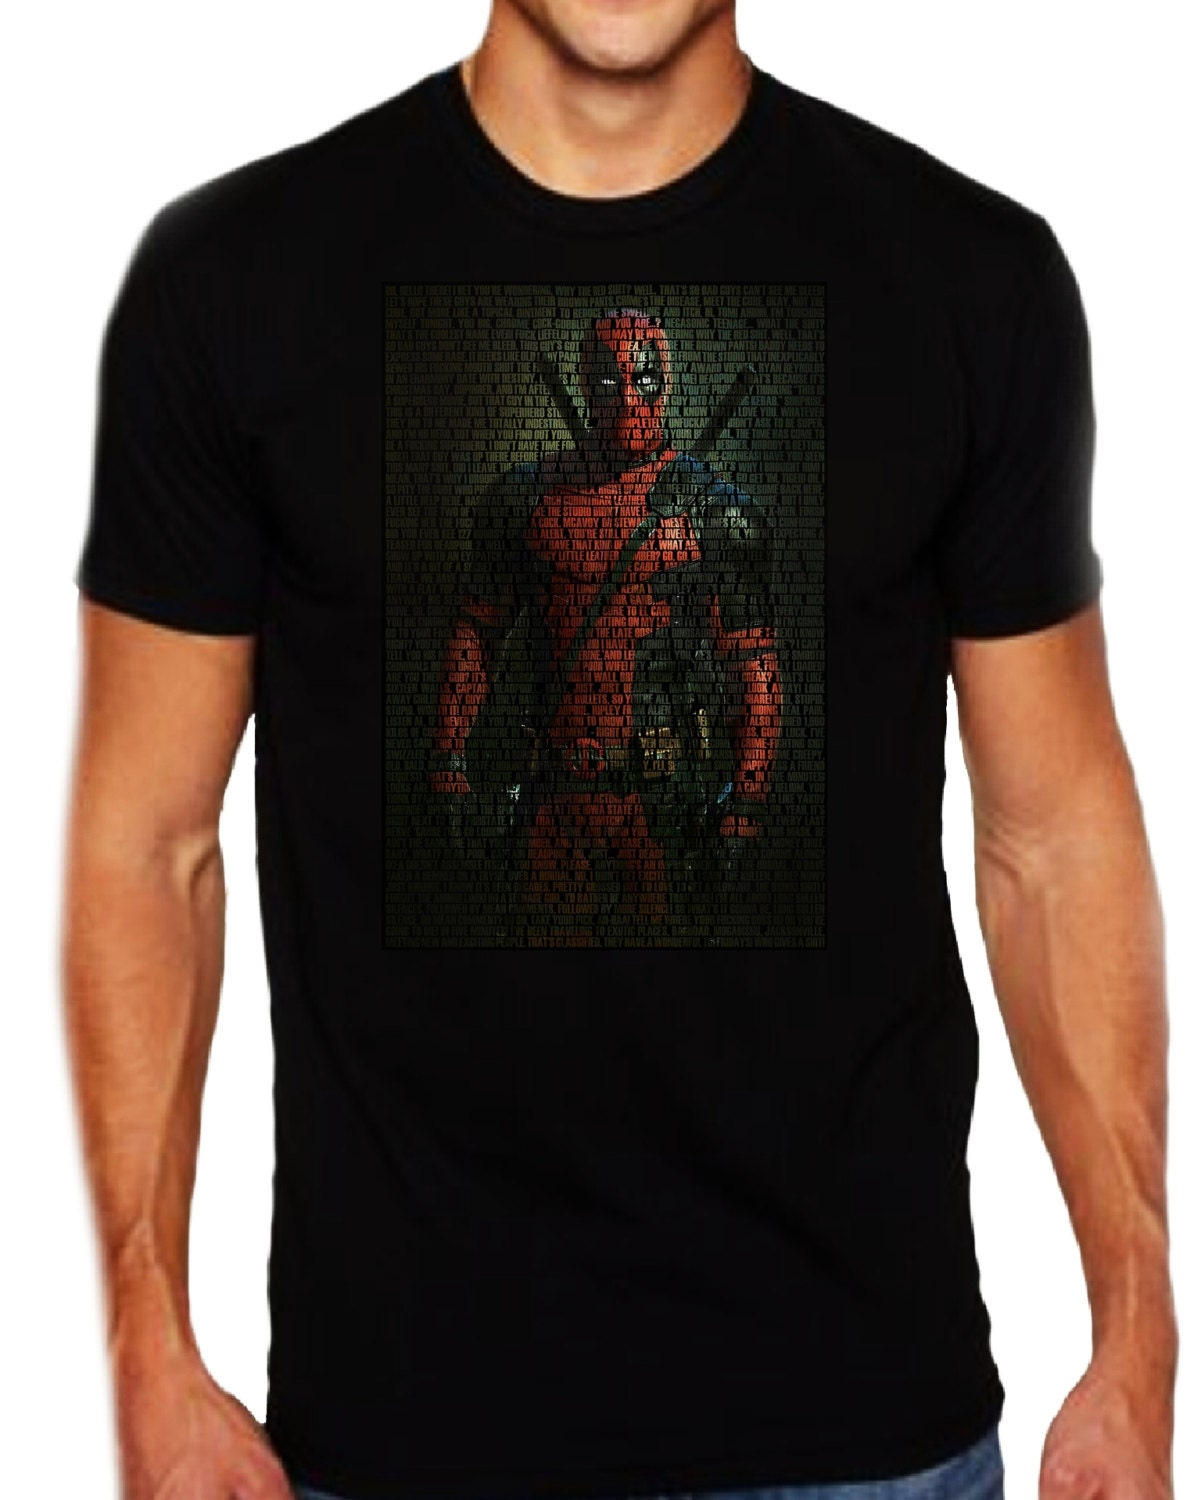 3f3f2017d68 Deadpool Quotes T-Shirt All Quotes Deadpool-From